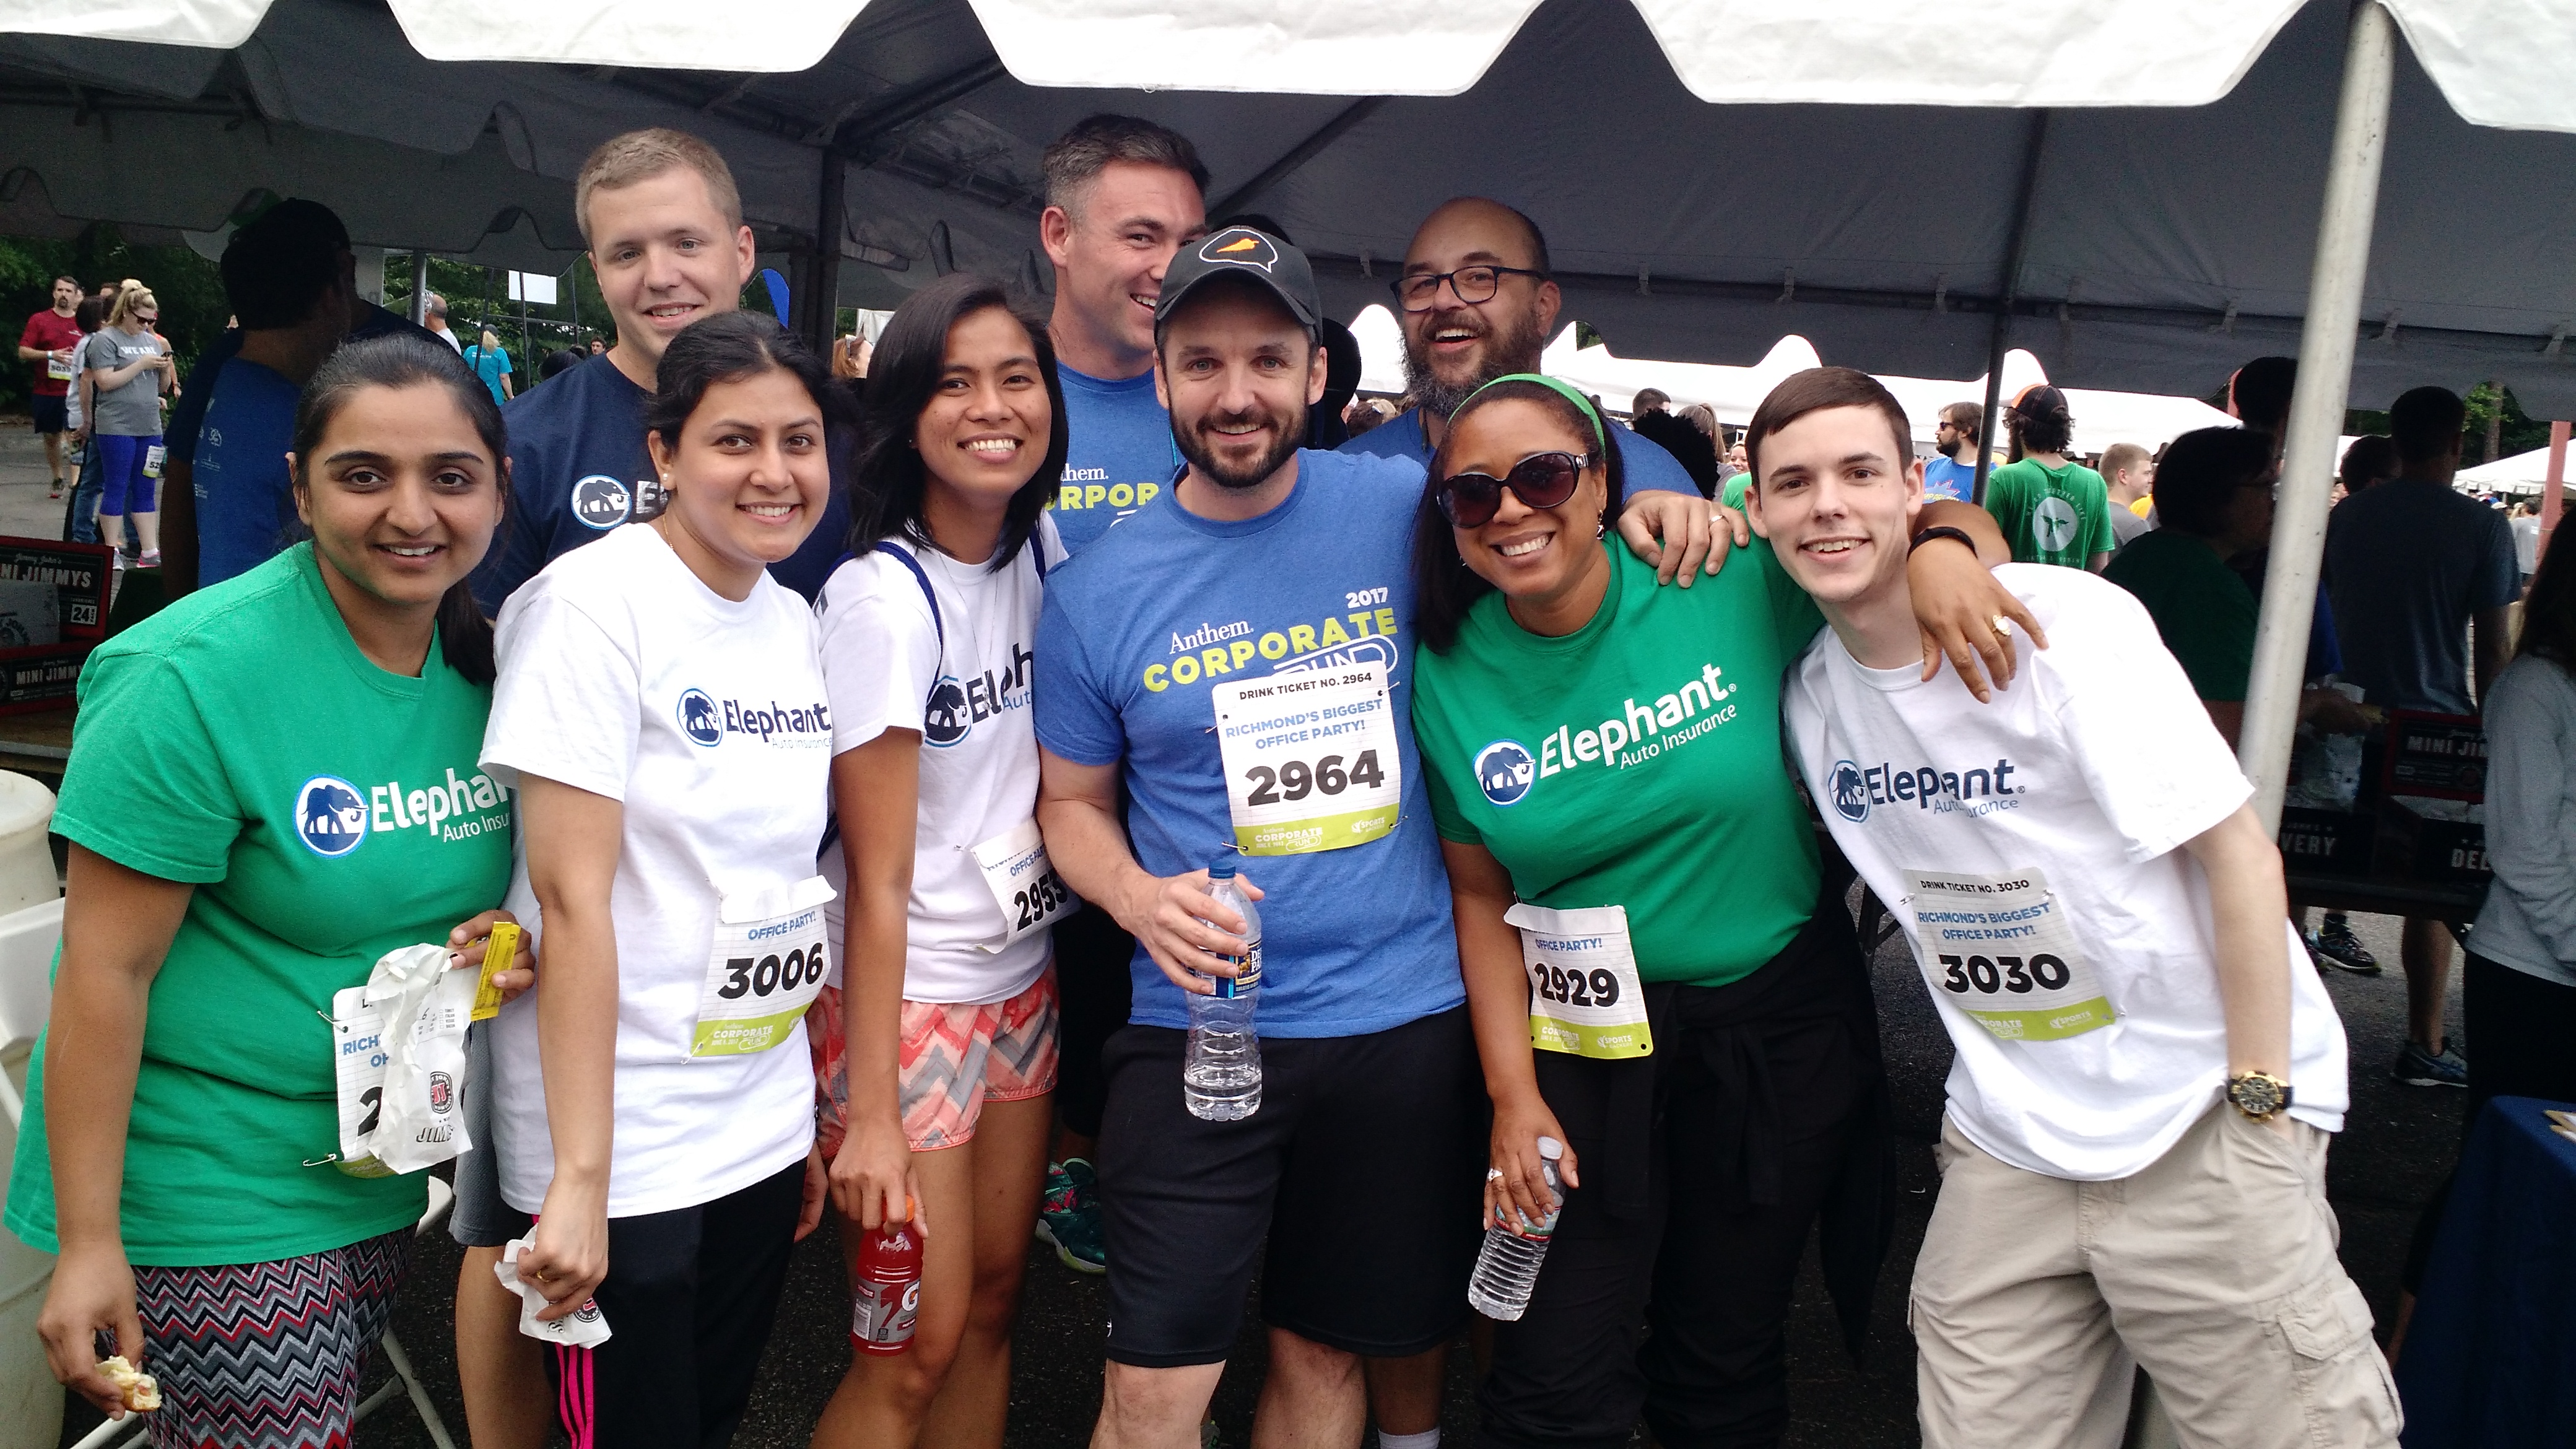 Elephant employees participate in local 5k event!